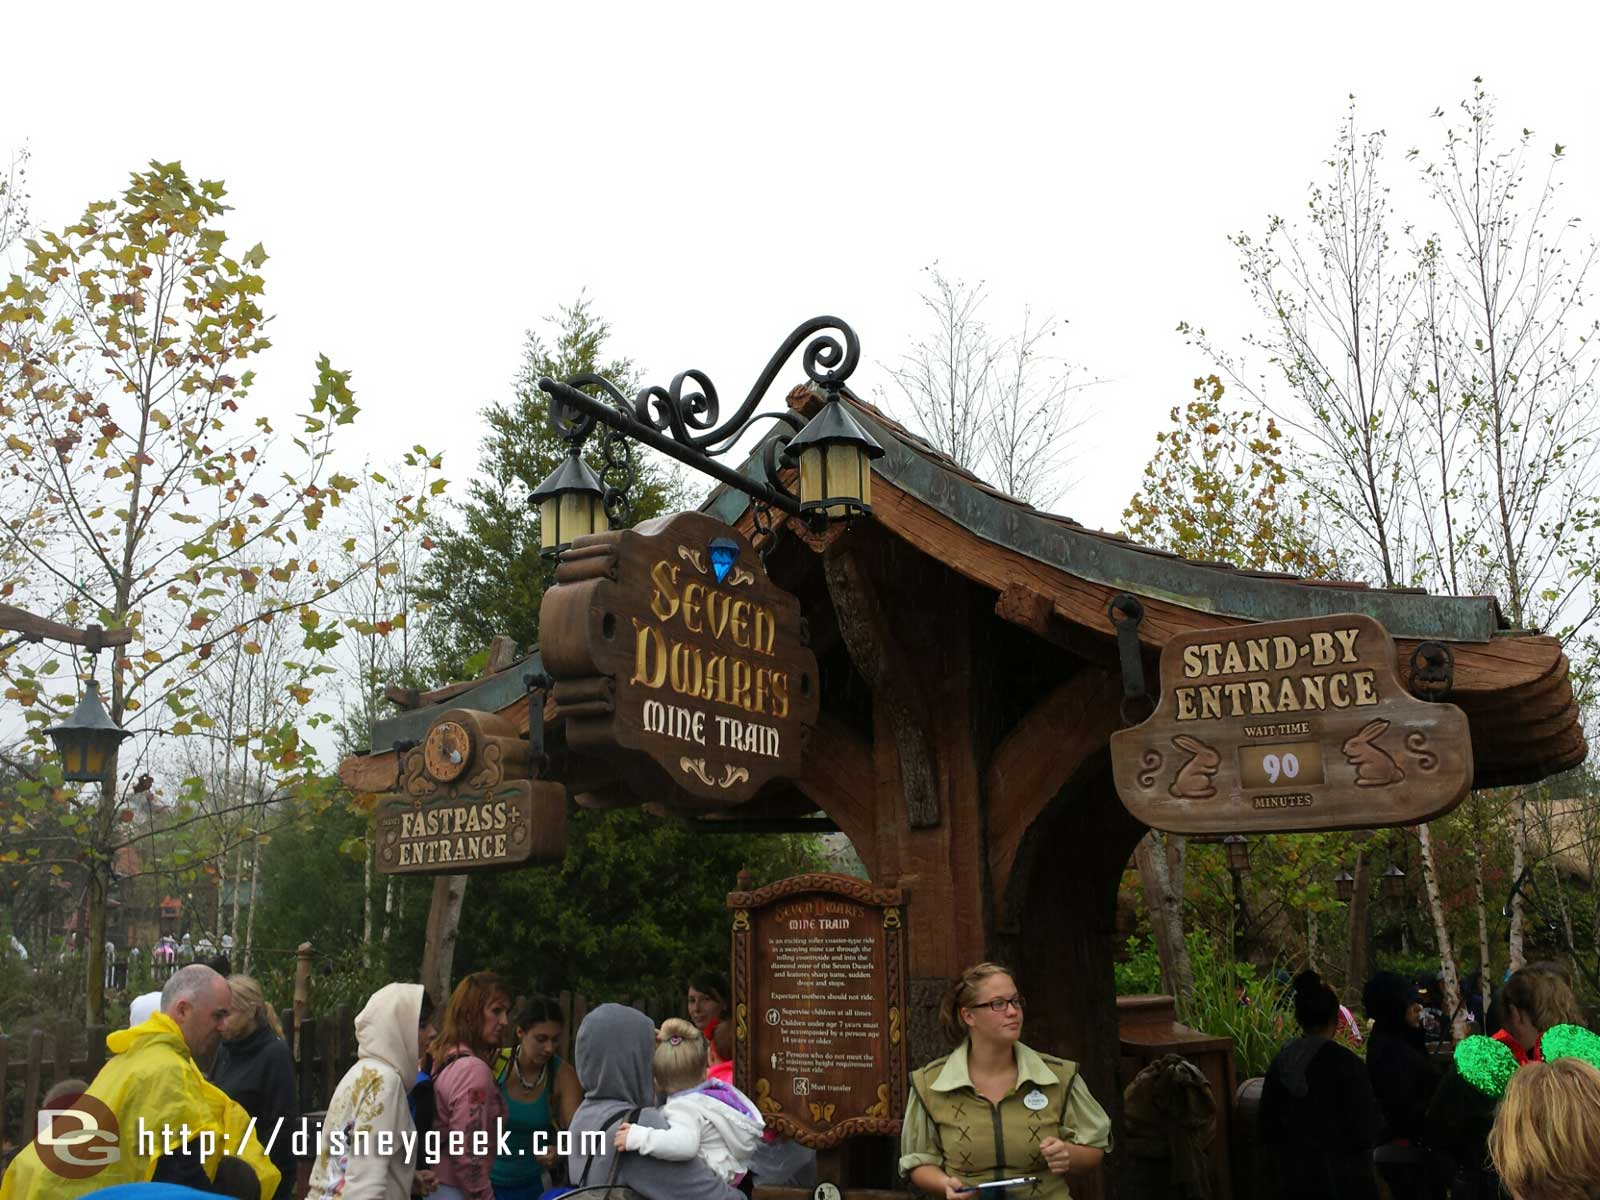 Even with the cool and rainy weather wait times are not short, Mine Train 90, Frozen sisters 115